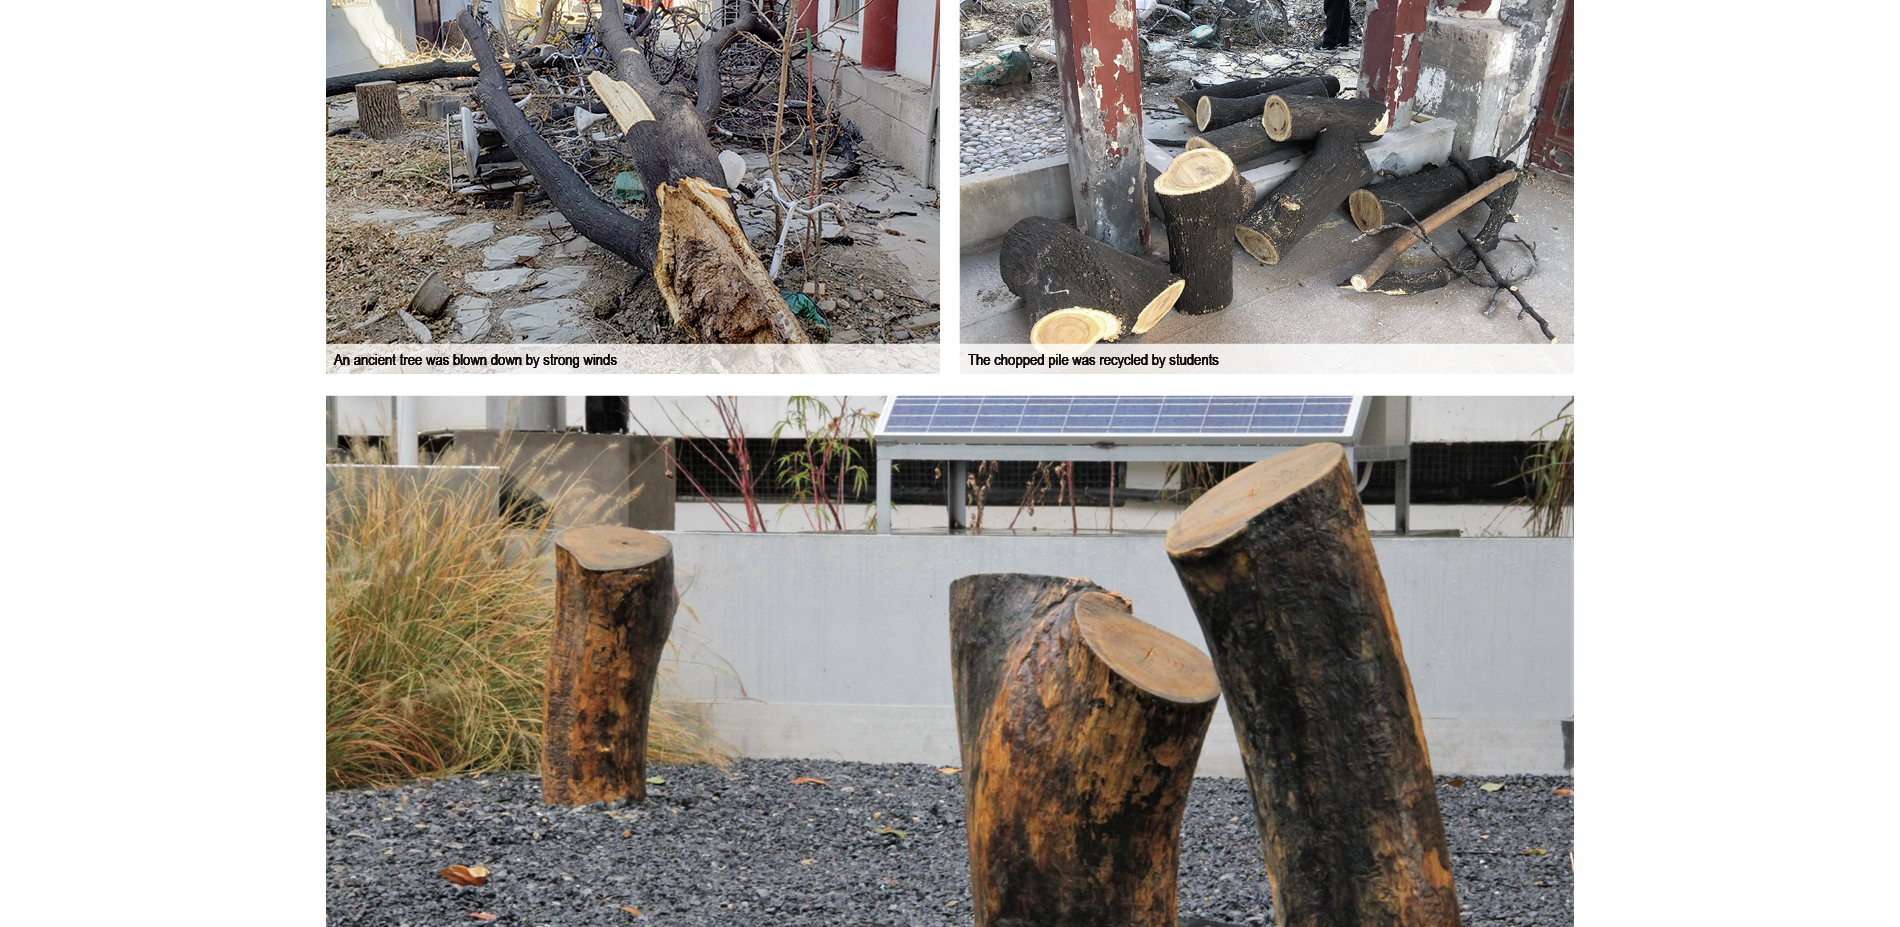 Recycled Stakes as Informal Seats